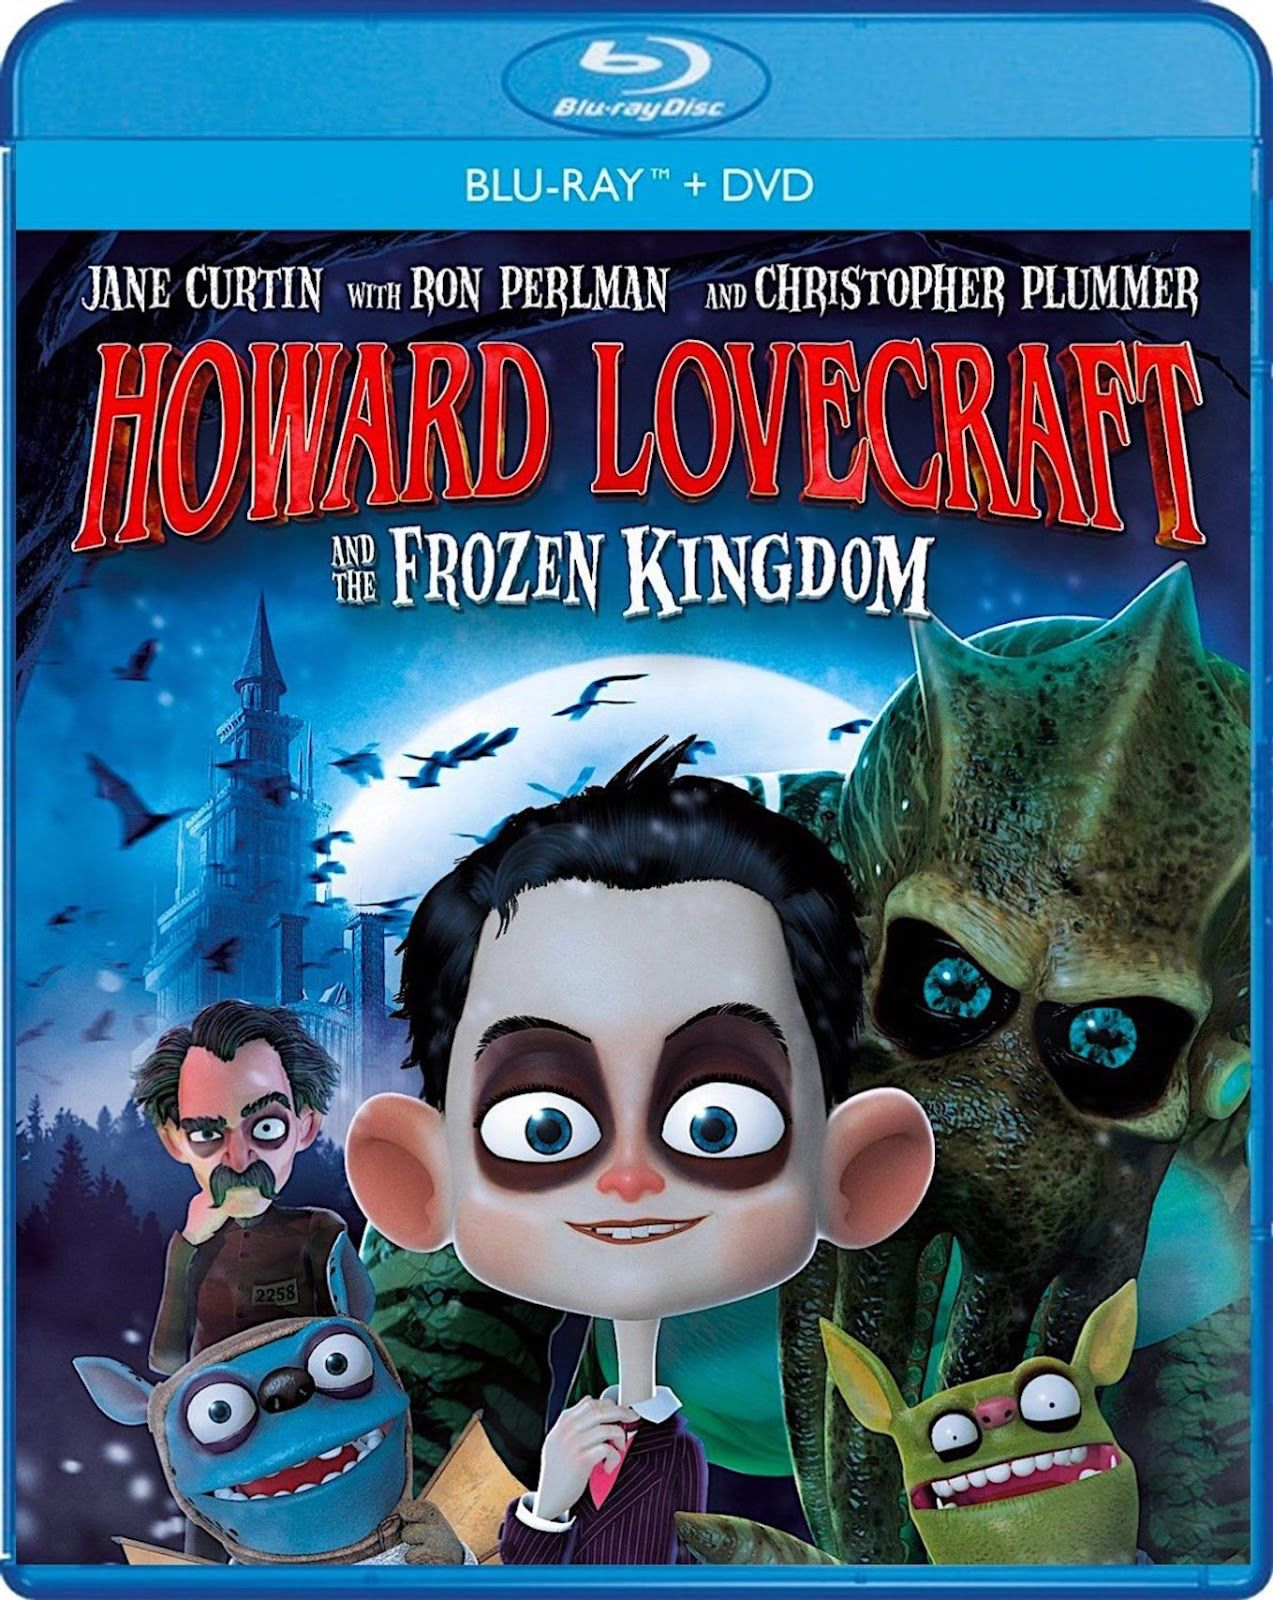 HOWARD LOVECRAFT AND THE FROZEN KINGDOM BLURAY Blu ray